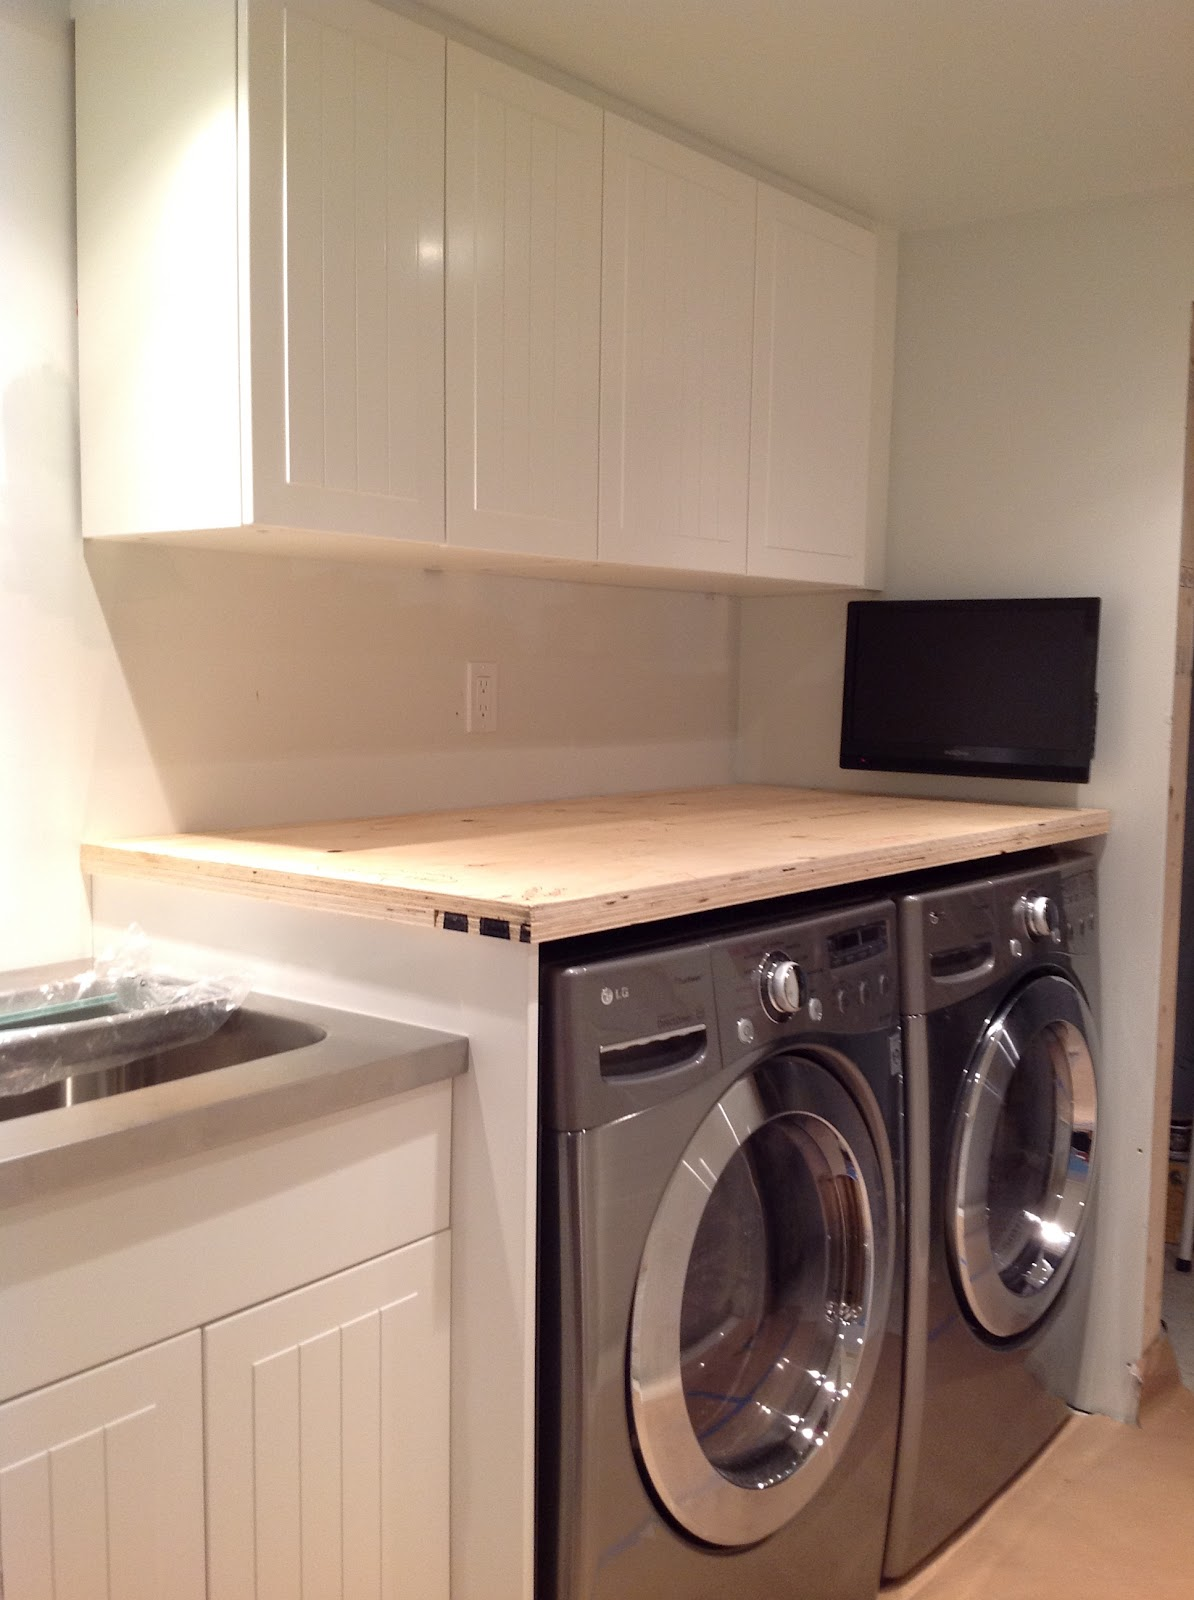 counter over front load washer and dryer, How To Install A Countertop Over A Washer And Dryer, DIY floating countertop in the laundry room, countertop cleat, countertop gable